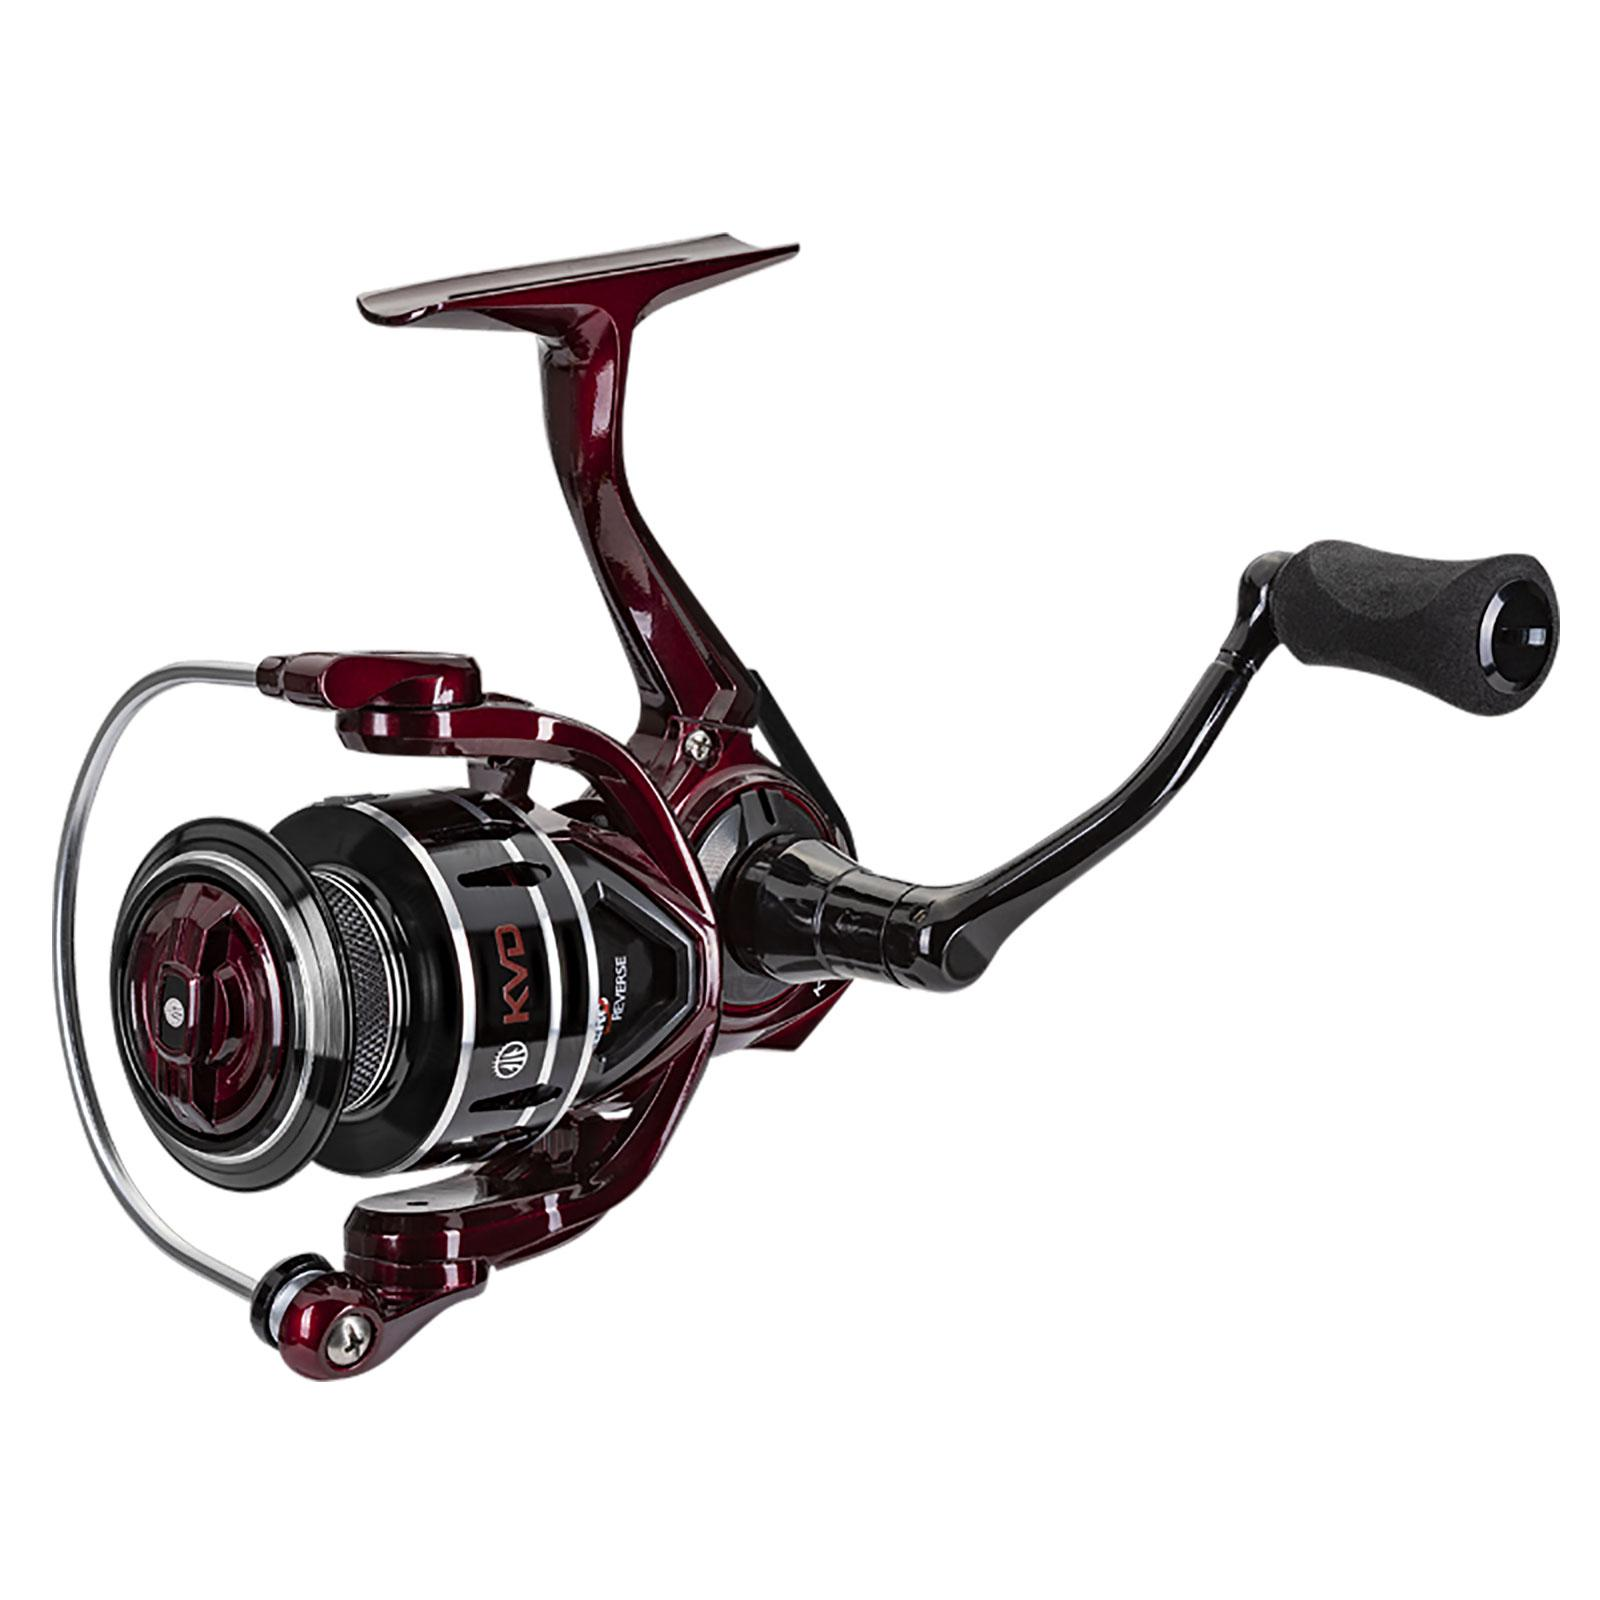 KVD Spinning Reel